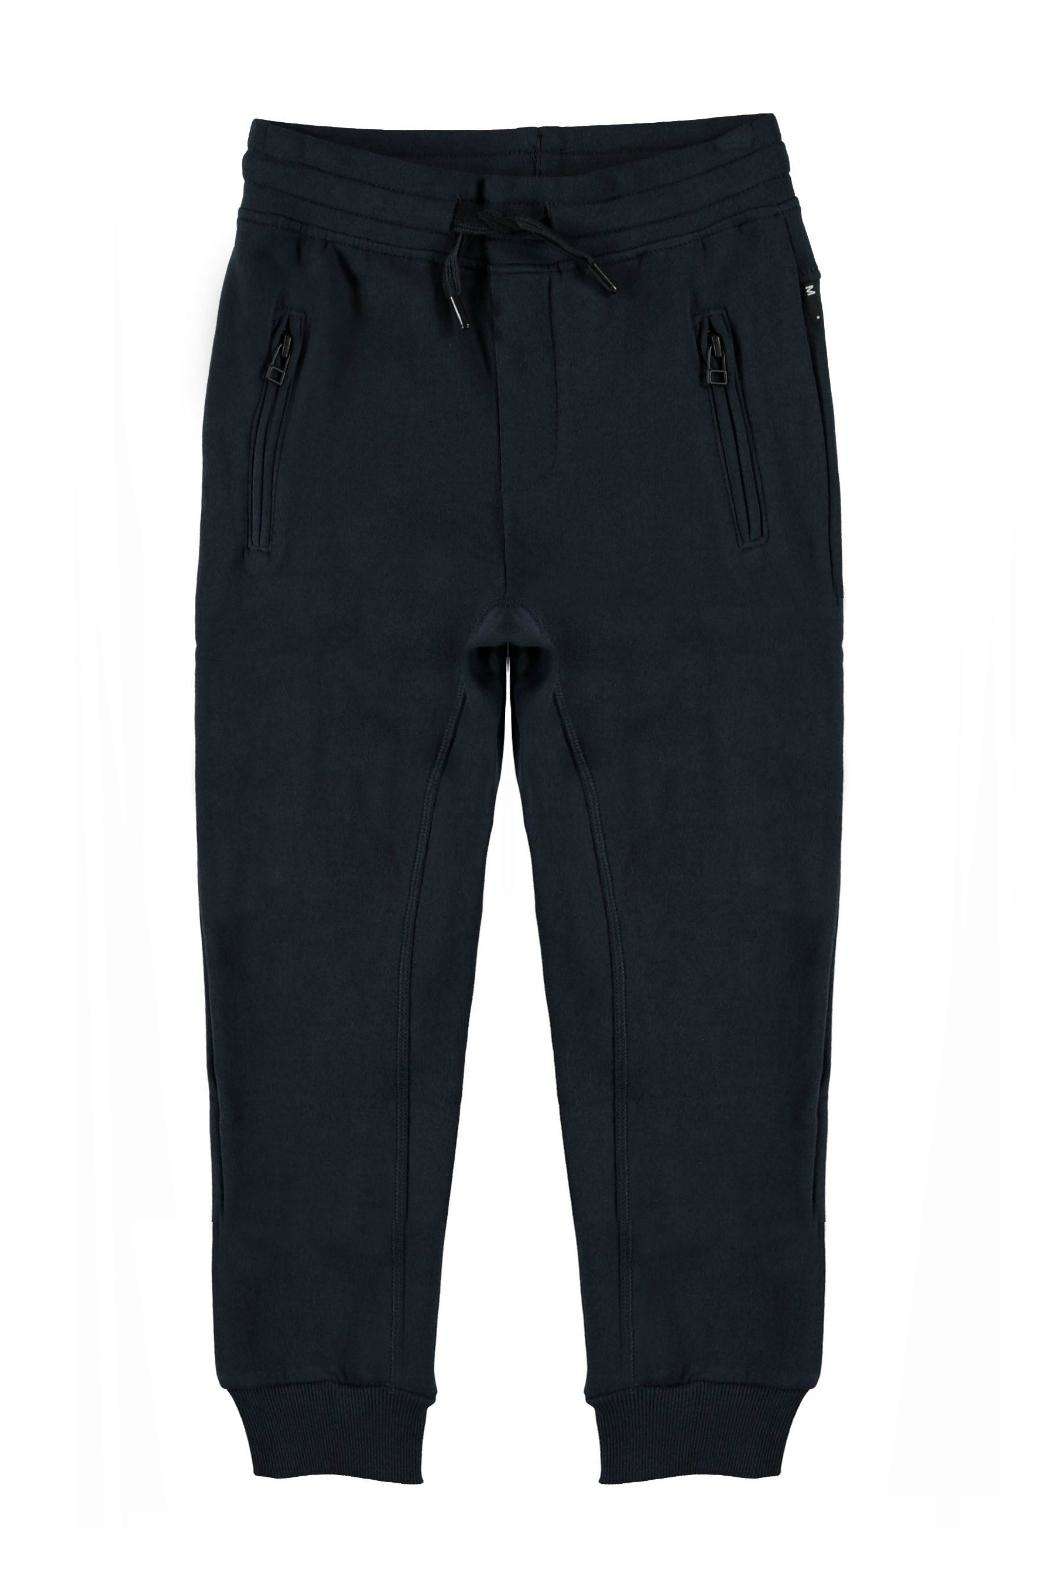 Molo Ash Carbon Trousers - Main Image